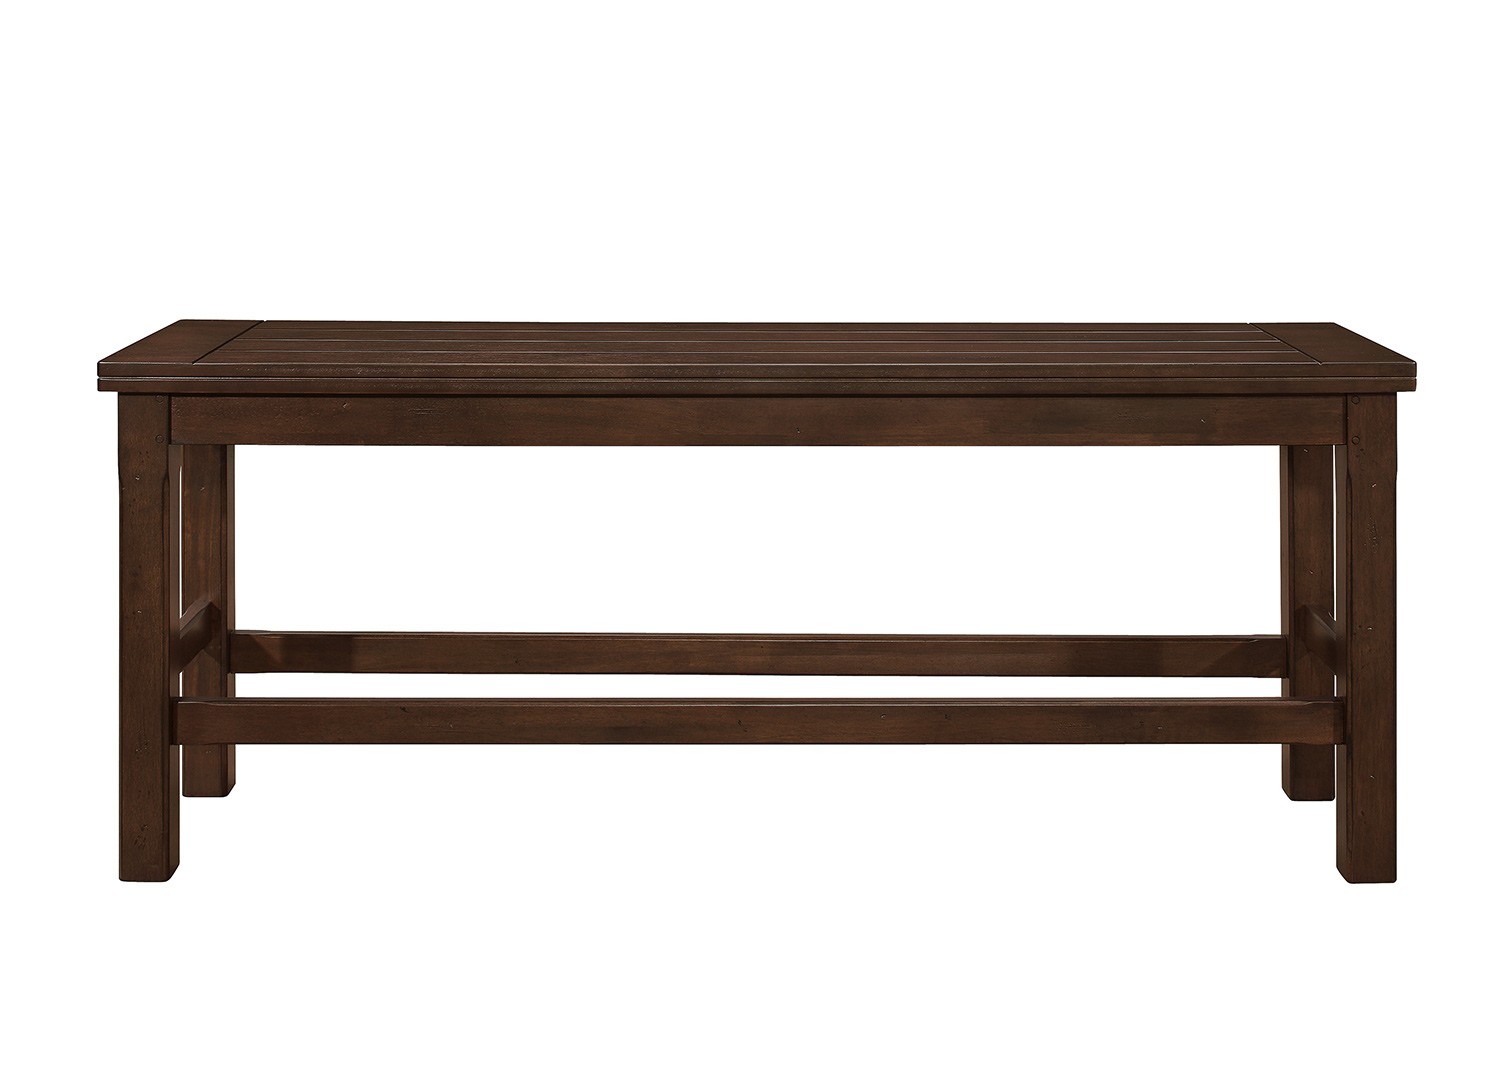 Homelegance Schleiger Counter Height Bench - Dark Brown